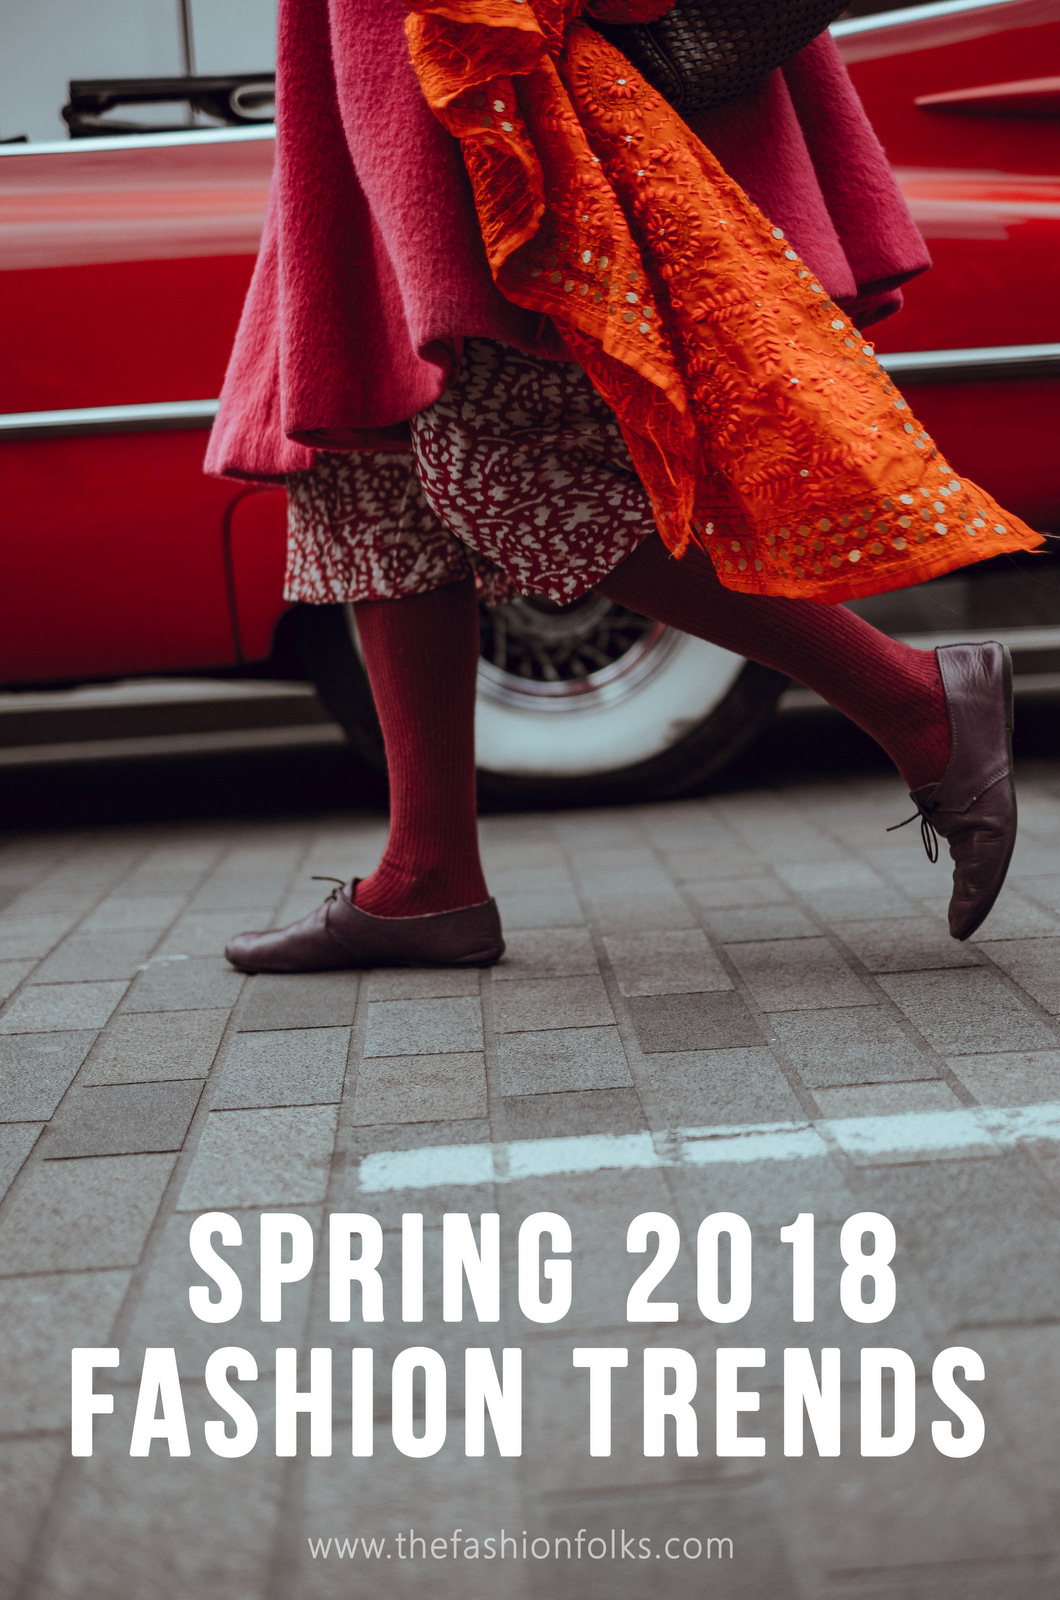 Preview Fashion Trends Spring 2018 The Fashion Folks